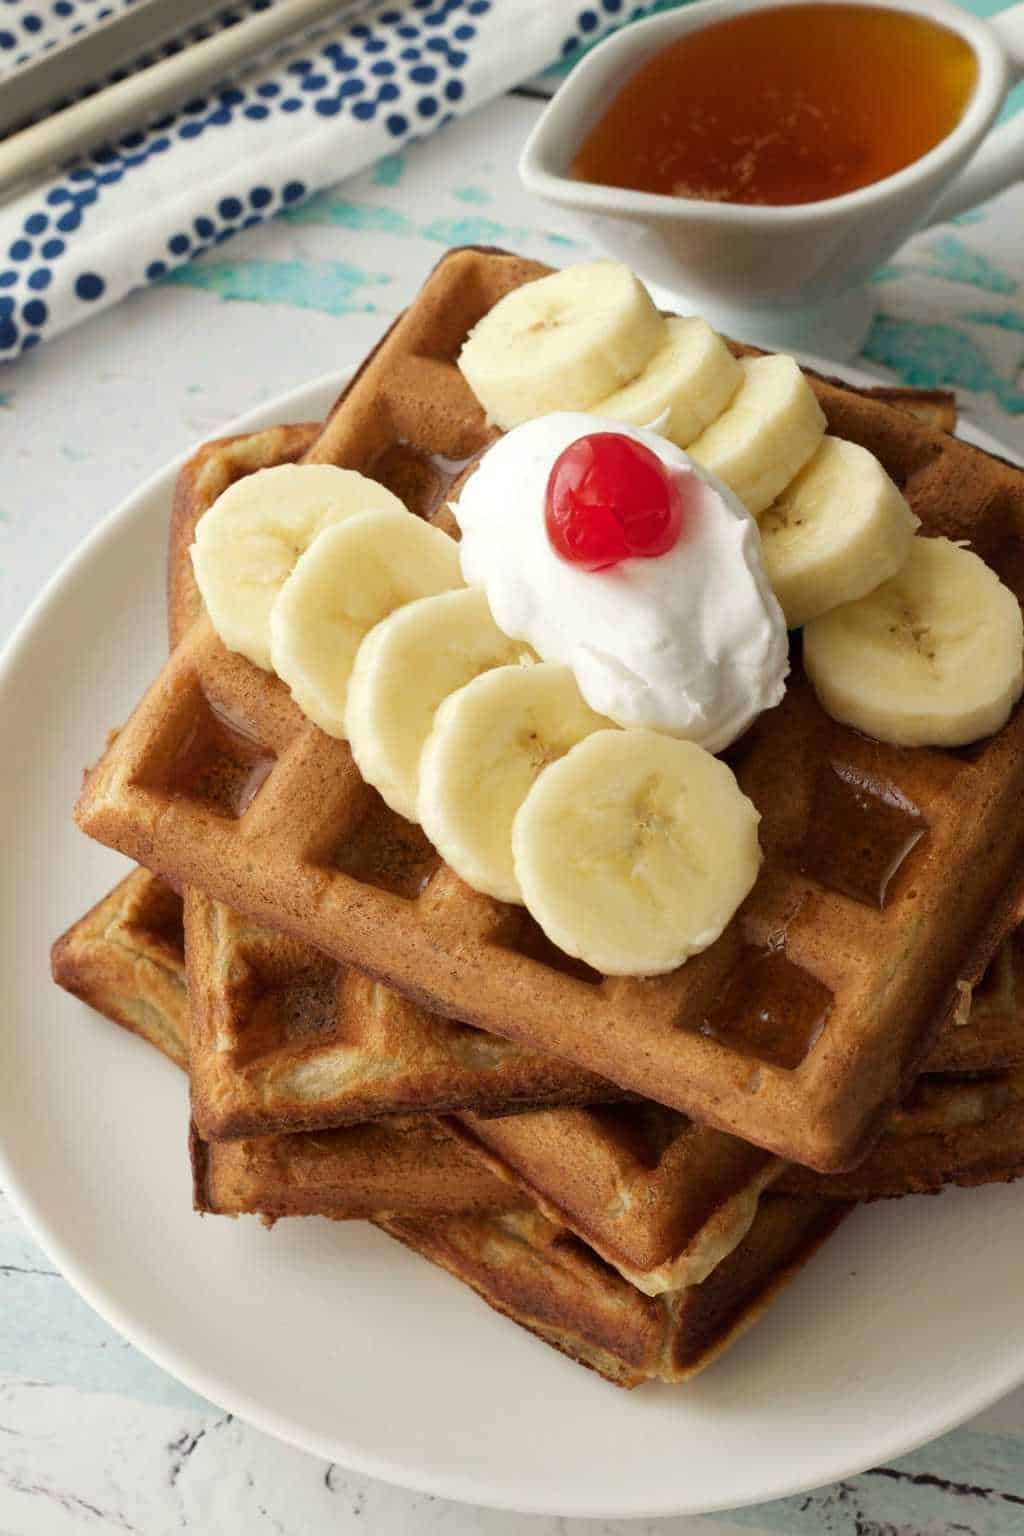 Vegan Banana Waffles - golden brown and perfectly crispy! Ideal for breakfast! #vegan #lovingitvegan #breakfast #waffles